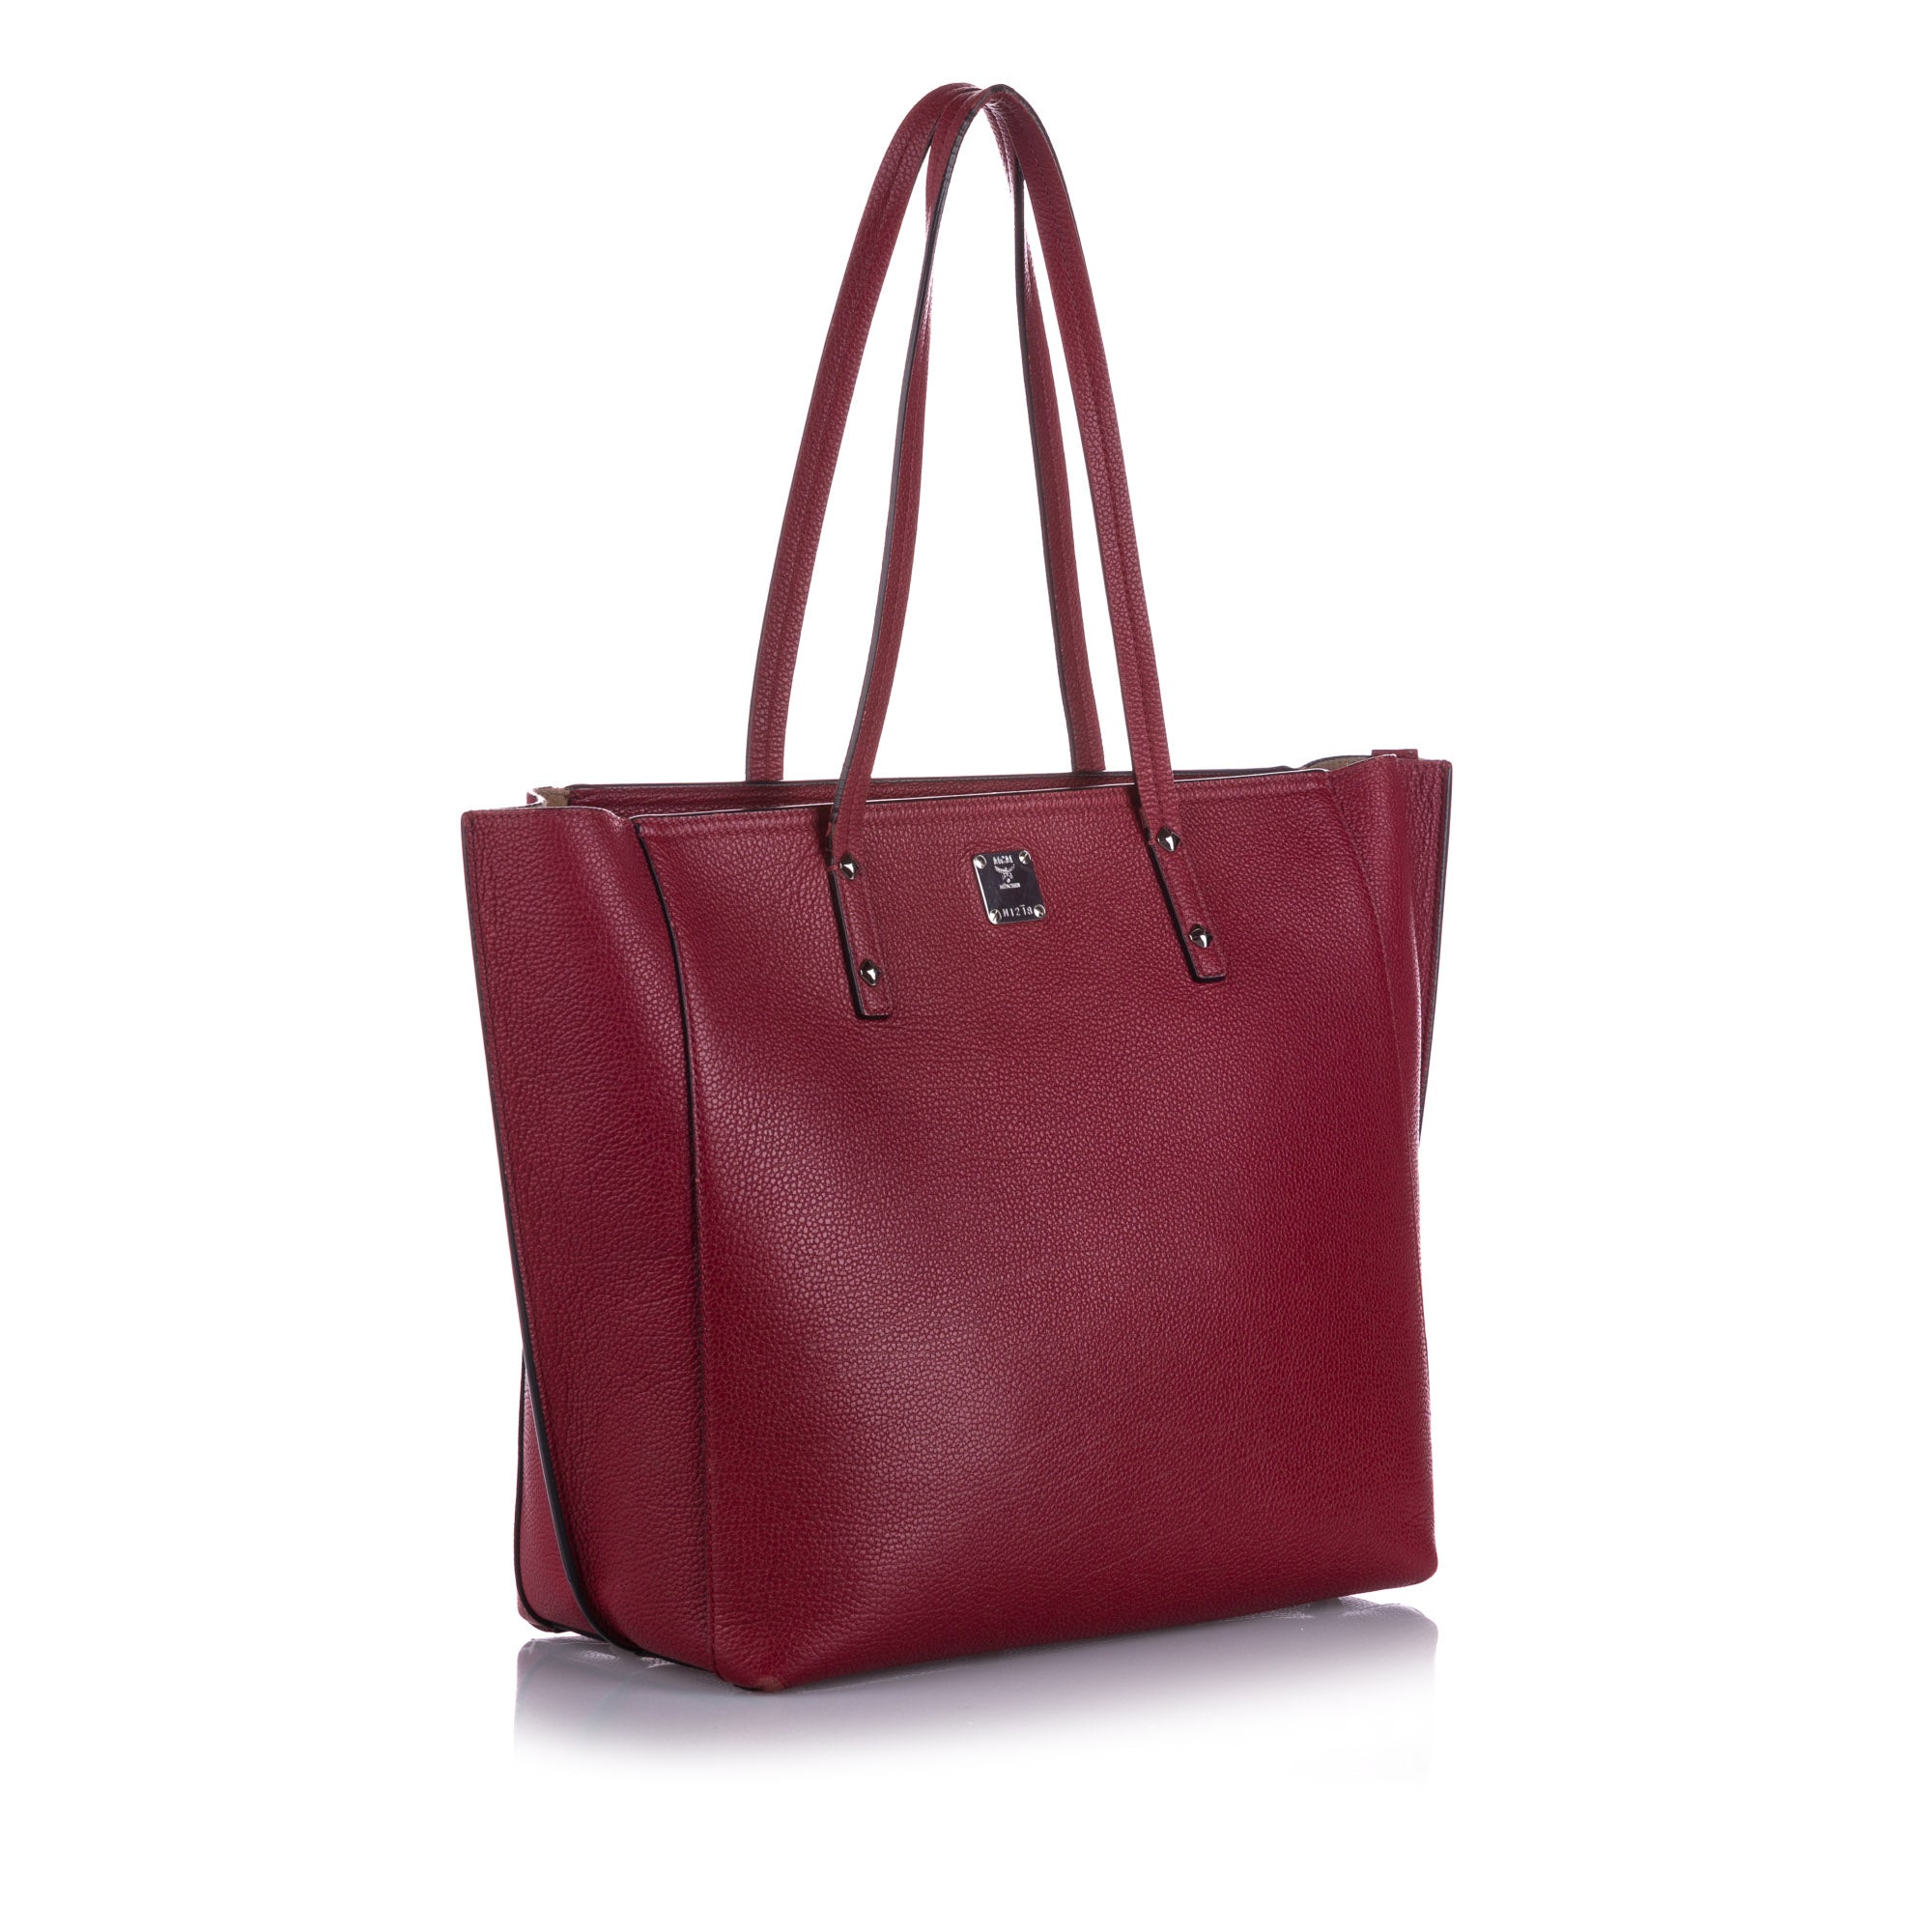 MCM Red Sophie Leather Shopper Tote Bag